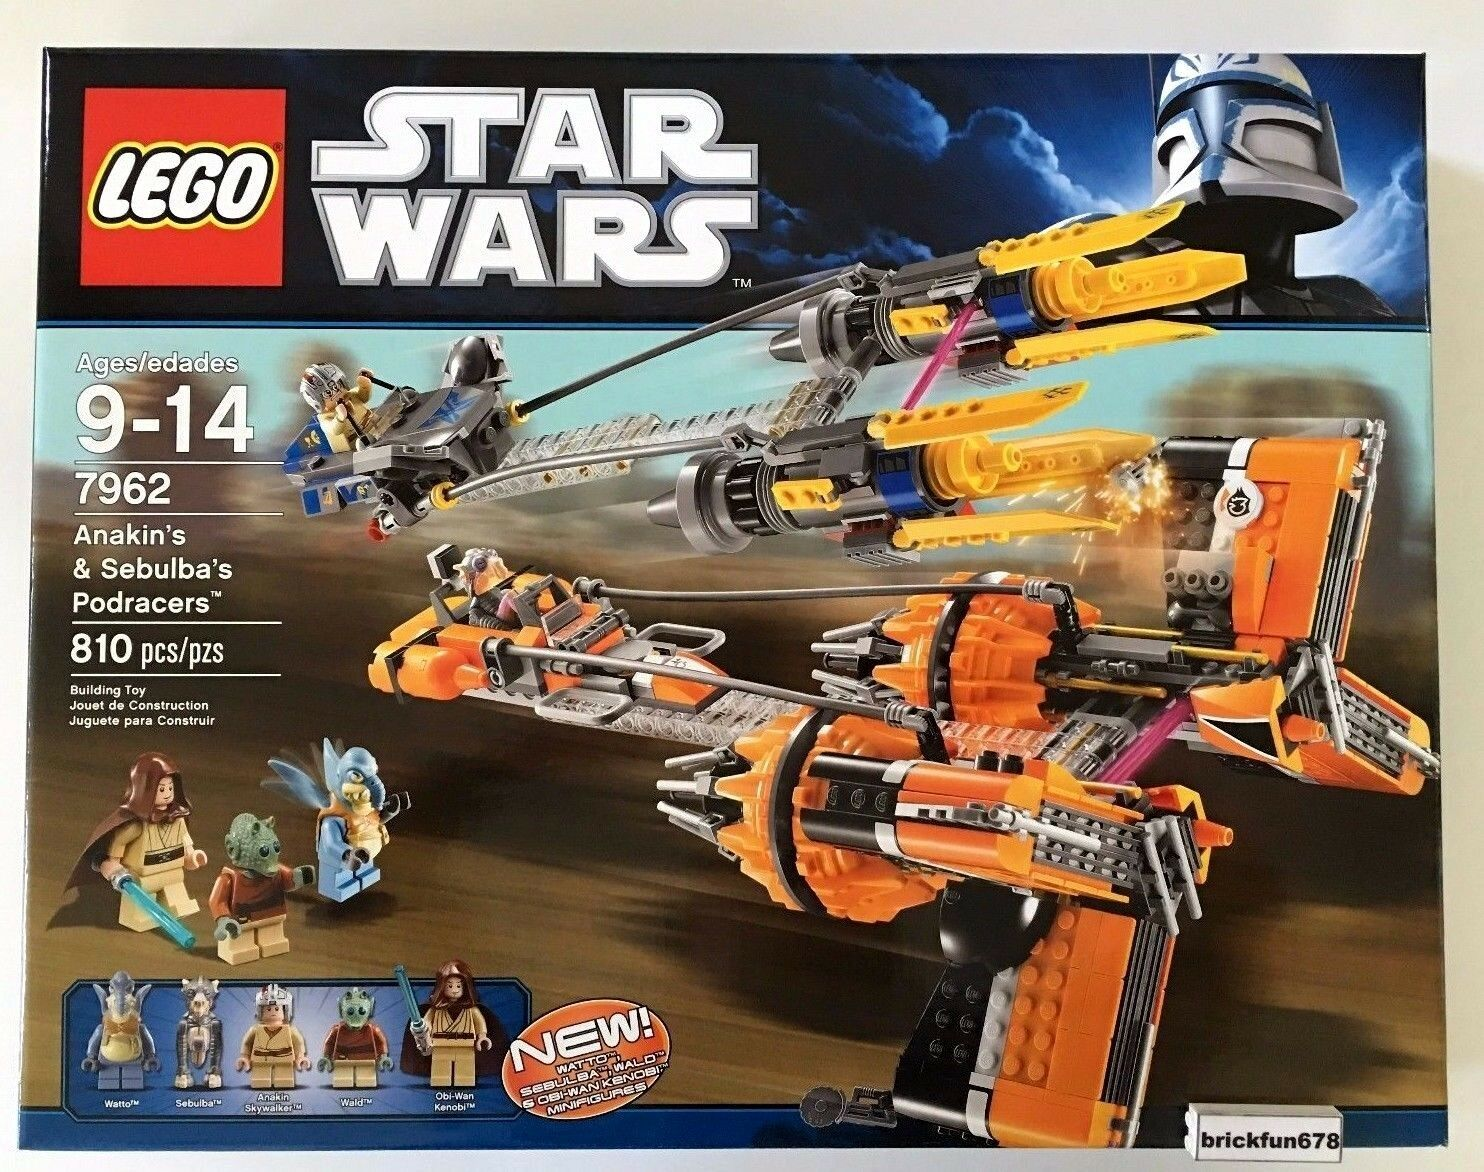 Lego Star Wars 7962 Anakin Skywalker Skywalker Skywalker and Sebulba's Podracers New Sealed Box 758d72